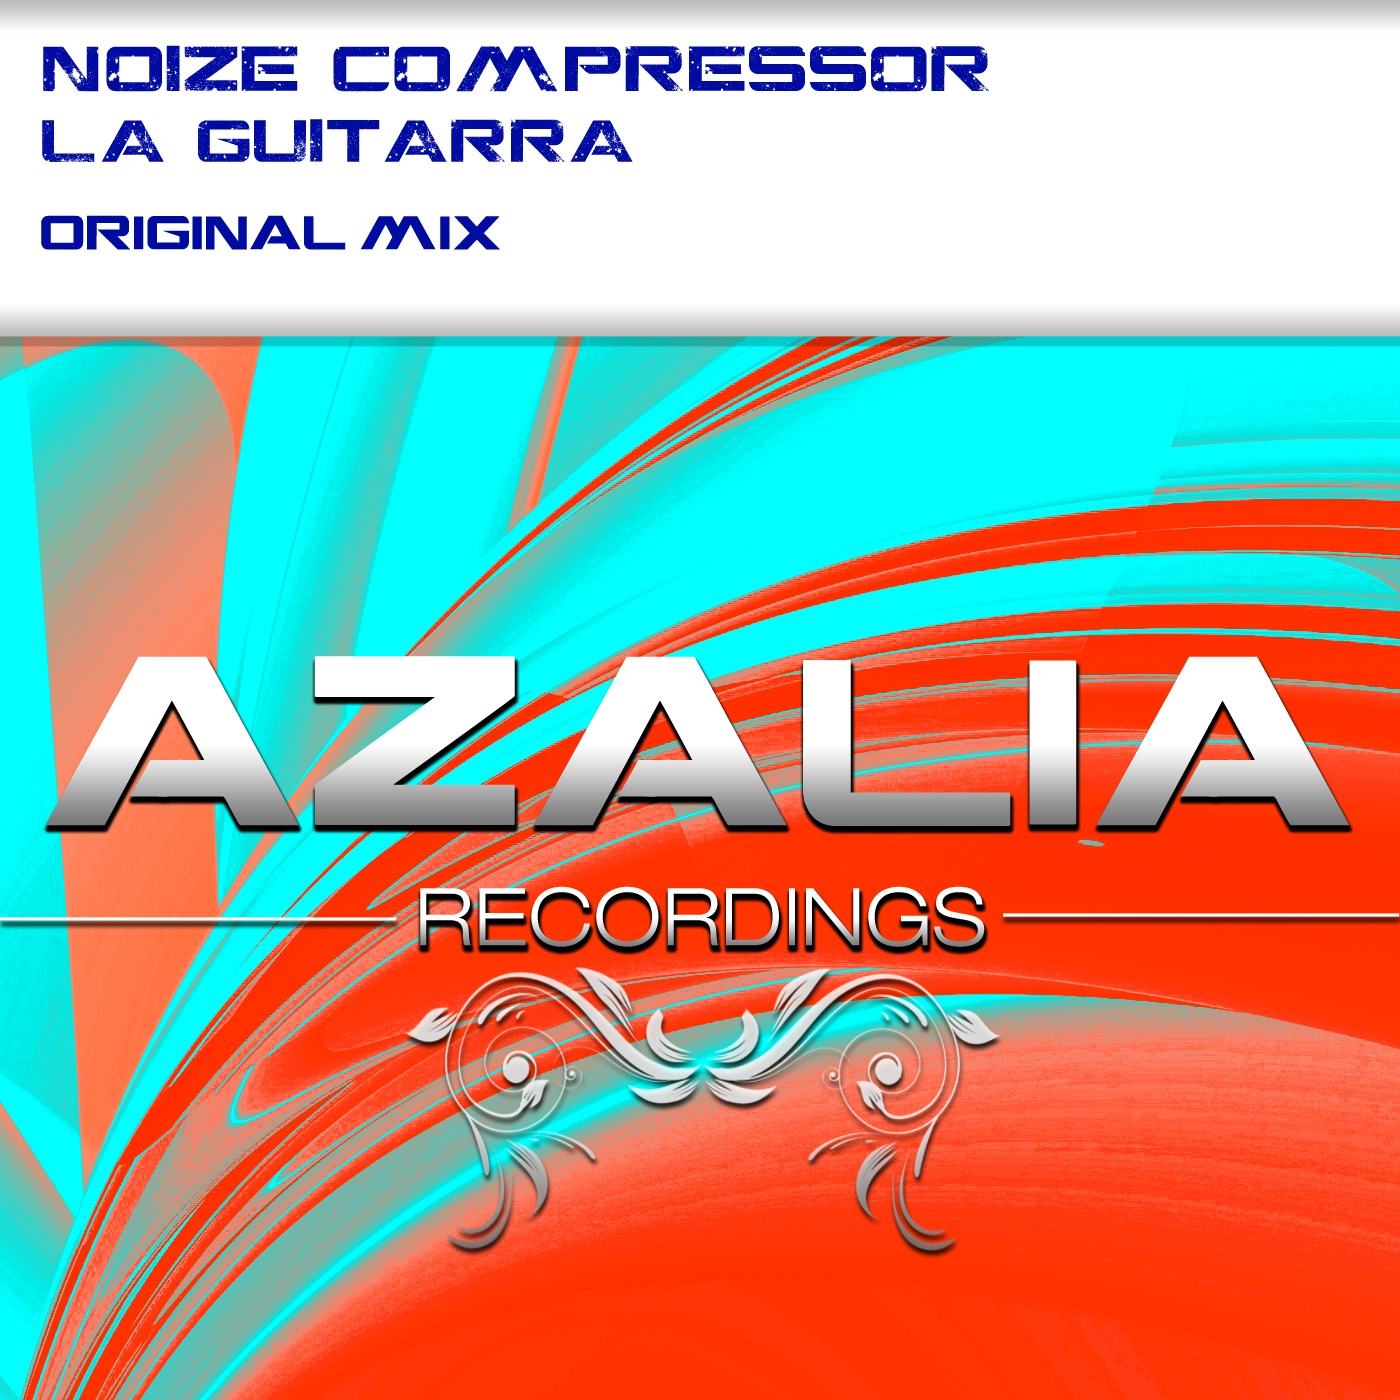 Noize Compressor - La Guitarra (Original Mix)